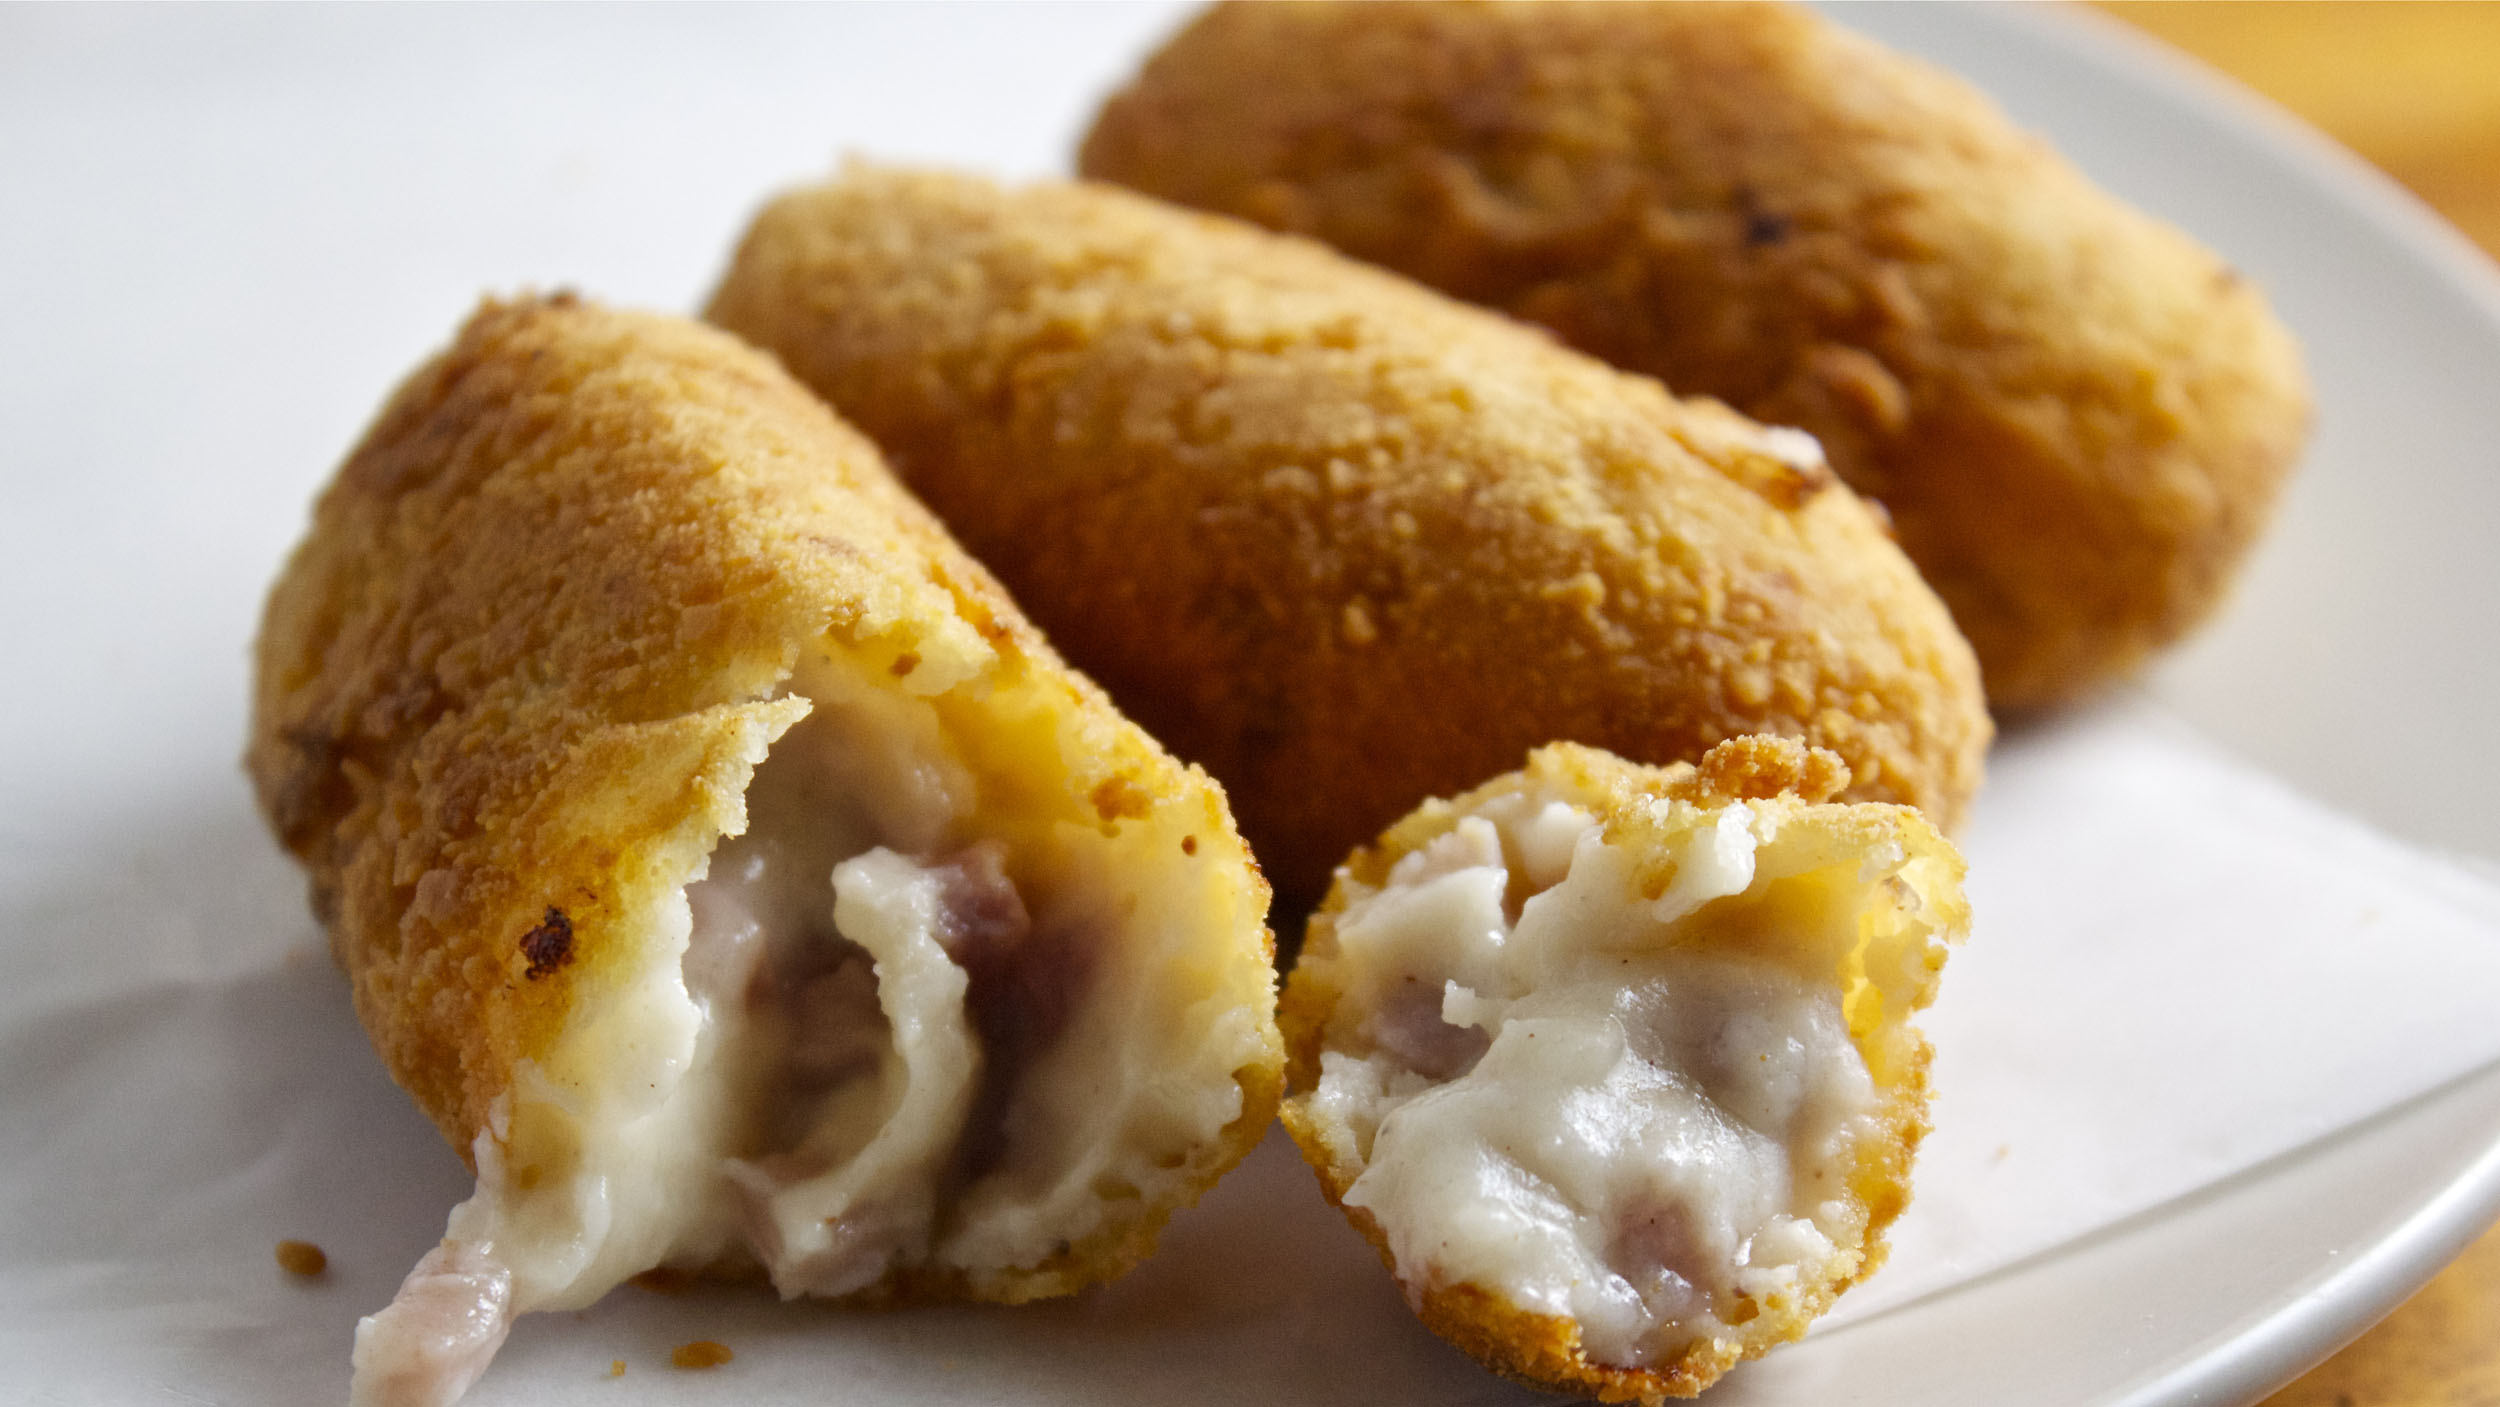 Fry Up This Cuban Croquetas For A Crowd Pleasing Snack